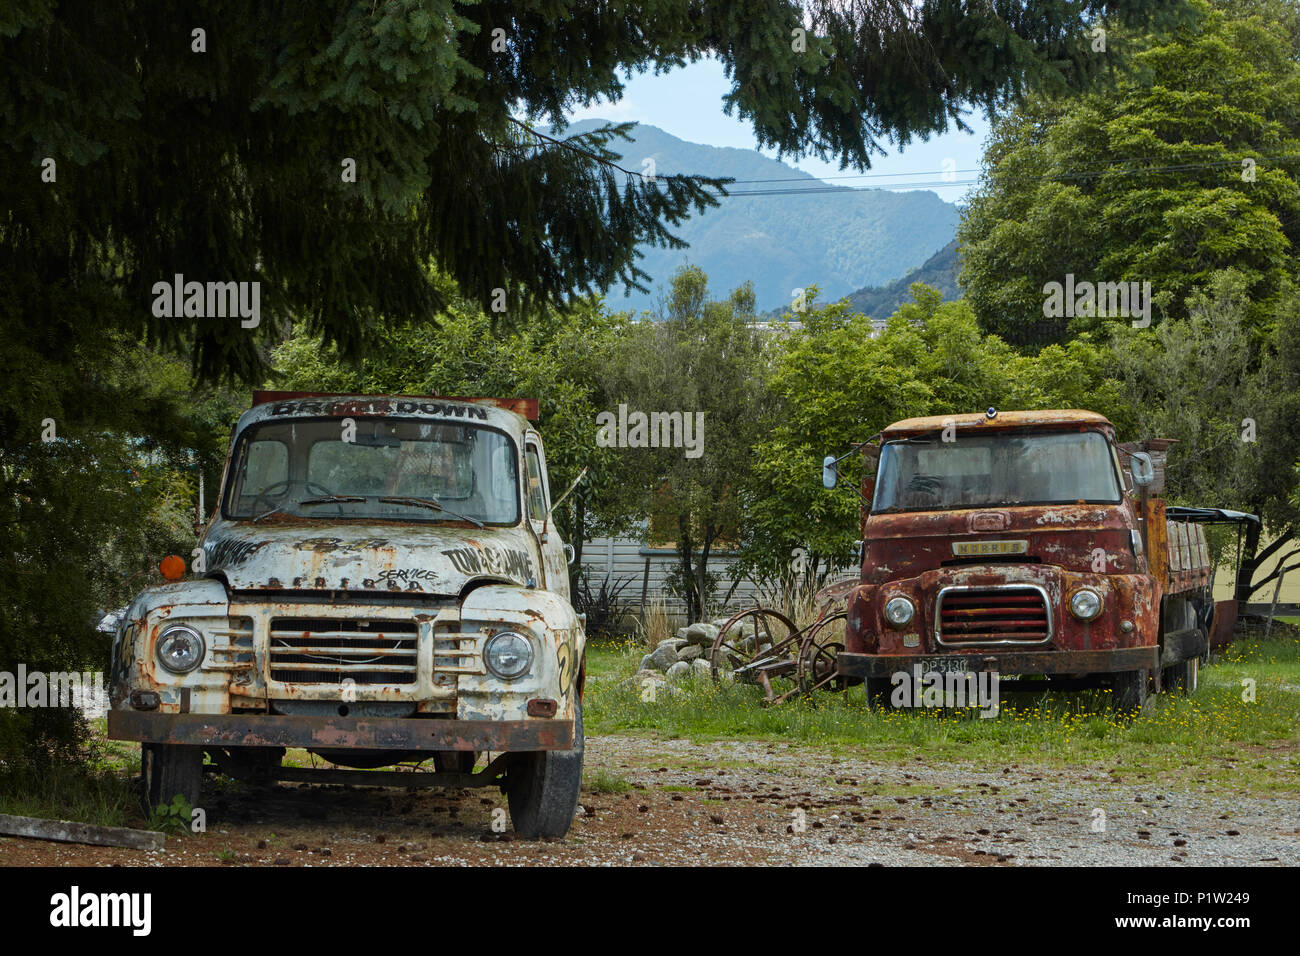 Old Bedford and Morris trucks, Murchison, Tasman District, South Island, New Zealand - Stock Image